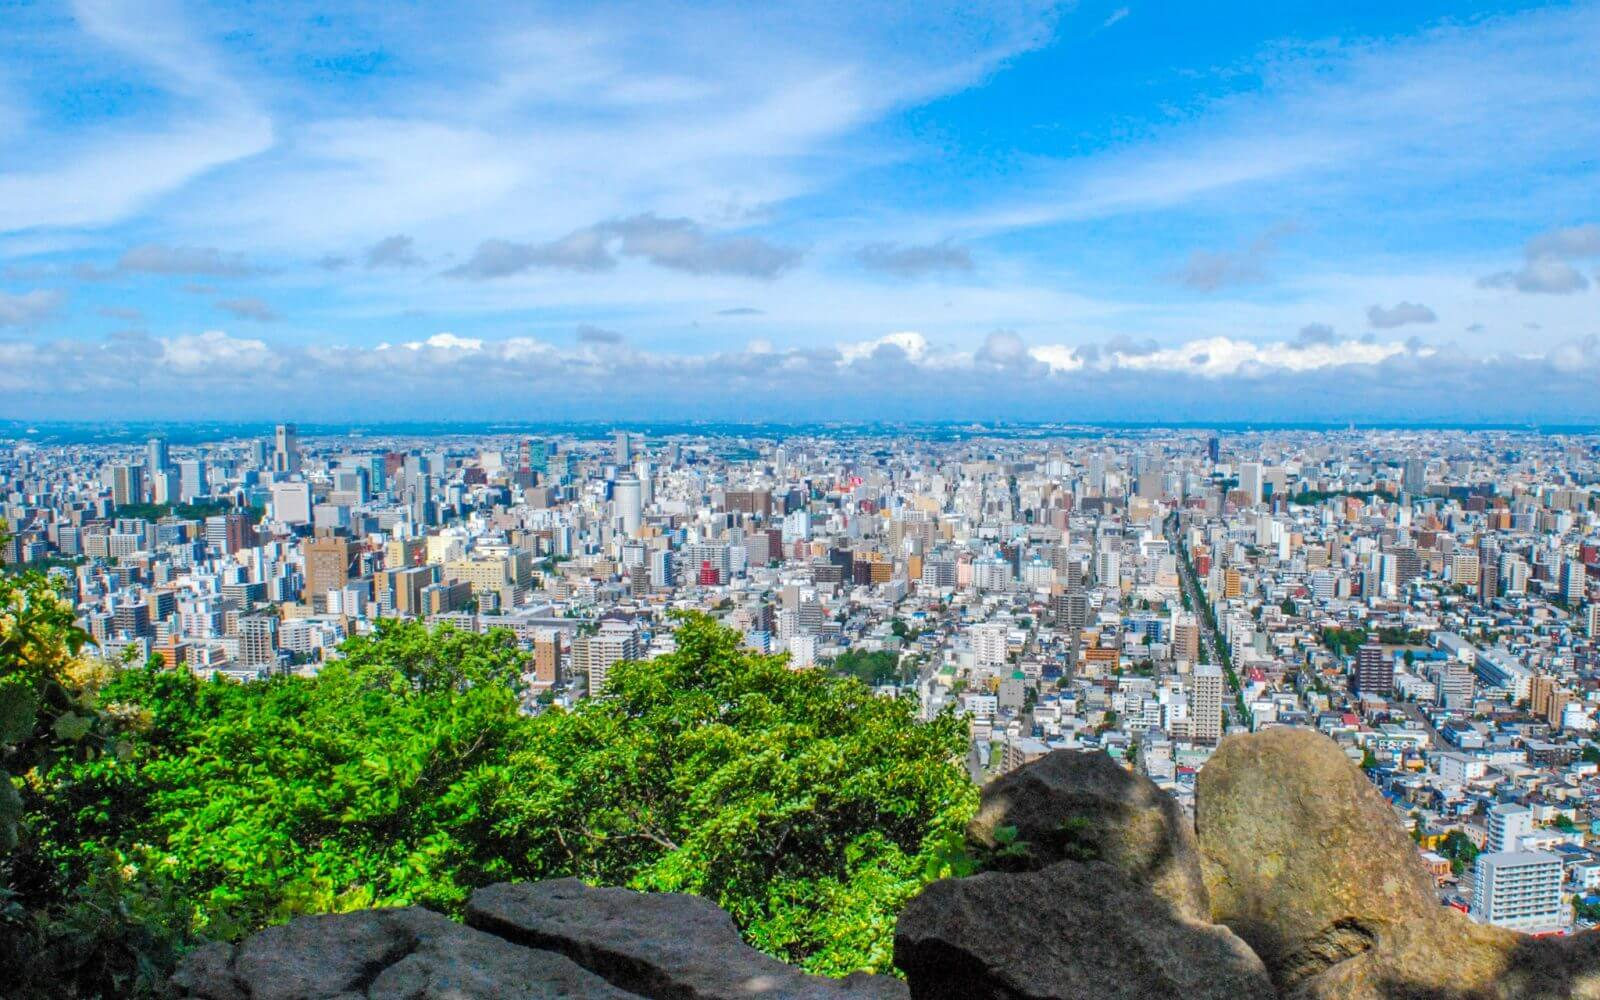 From the top of Mt. Maruyama, you can see some of Sapporo's landmark buildings, including the JR Tower, the distinctive shape of which is visible on the left-hand side of this photo.